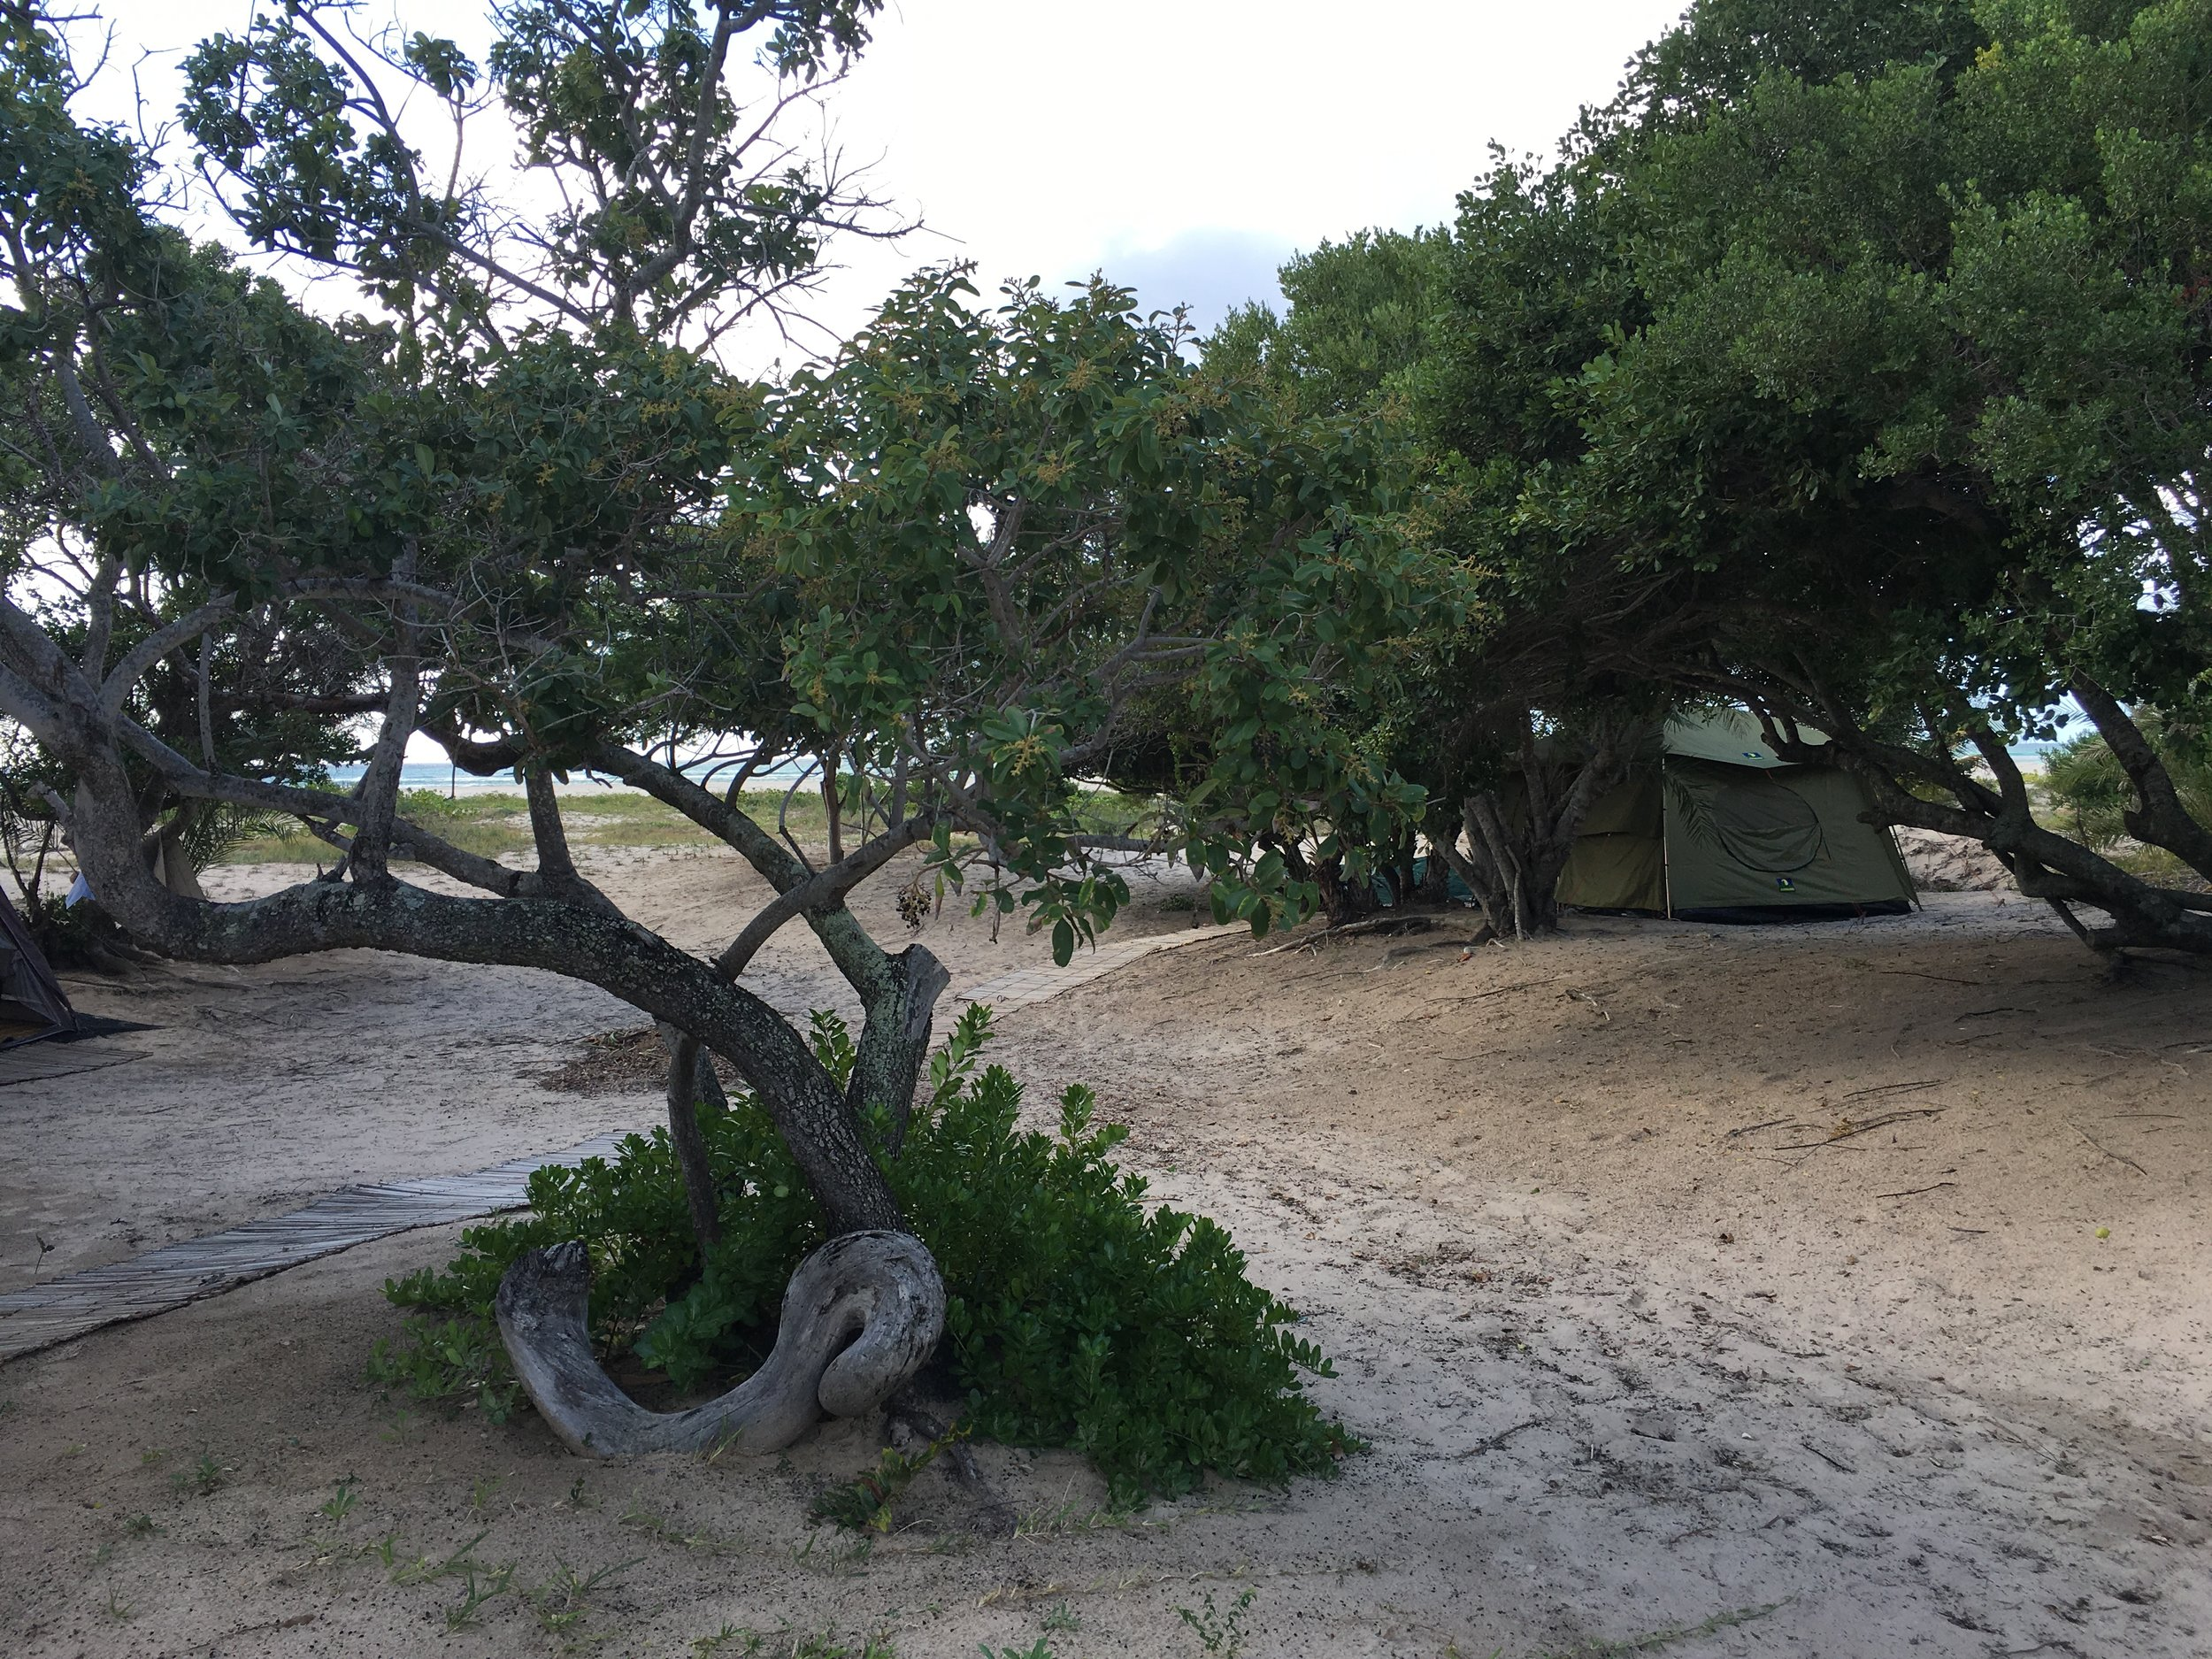 Mozam 22 - Room with a view - tent under trees.JPG